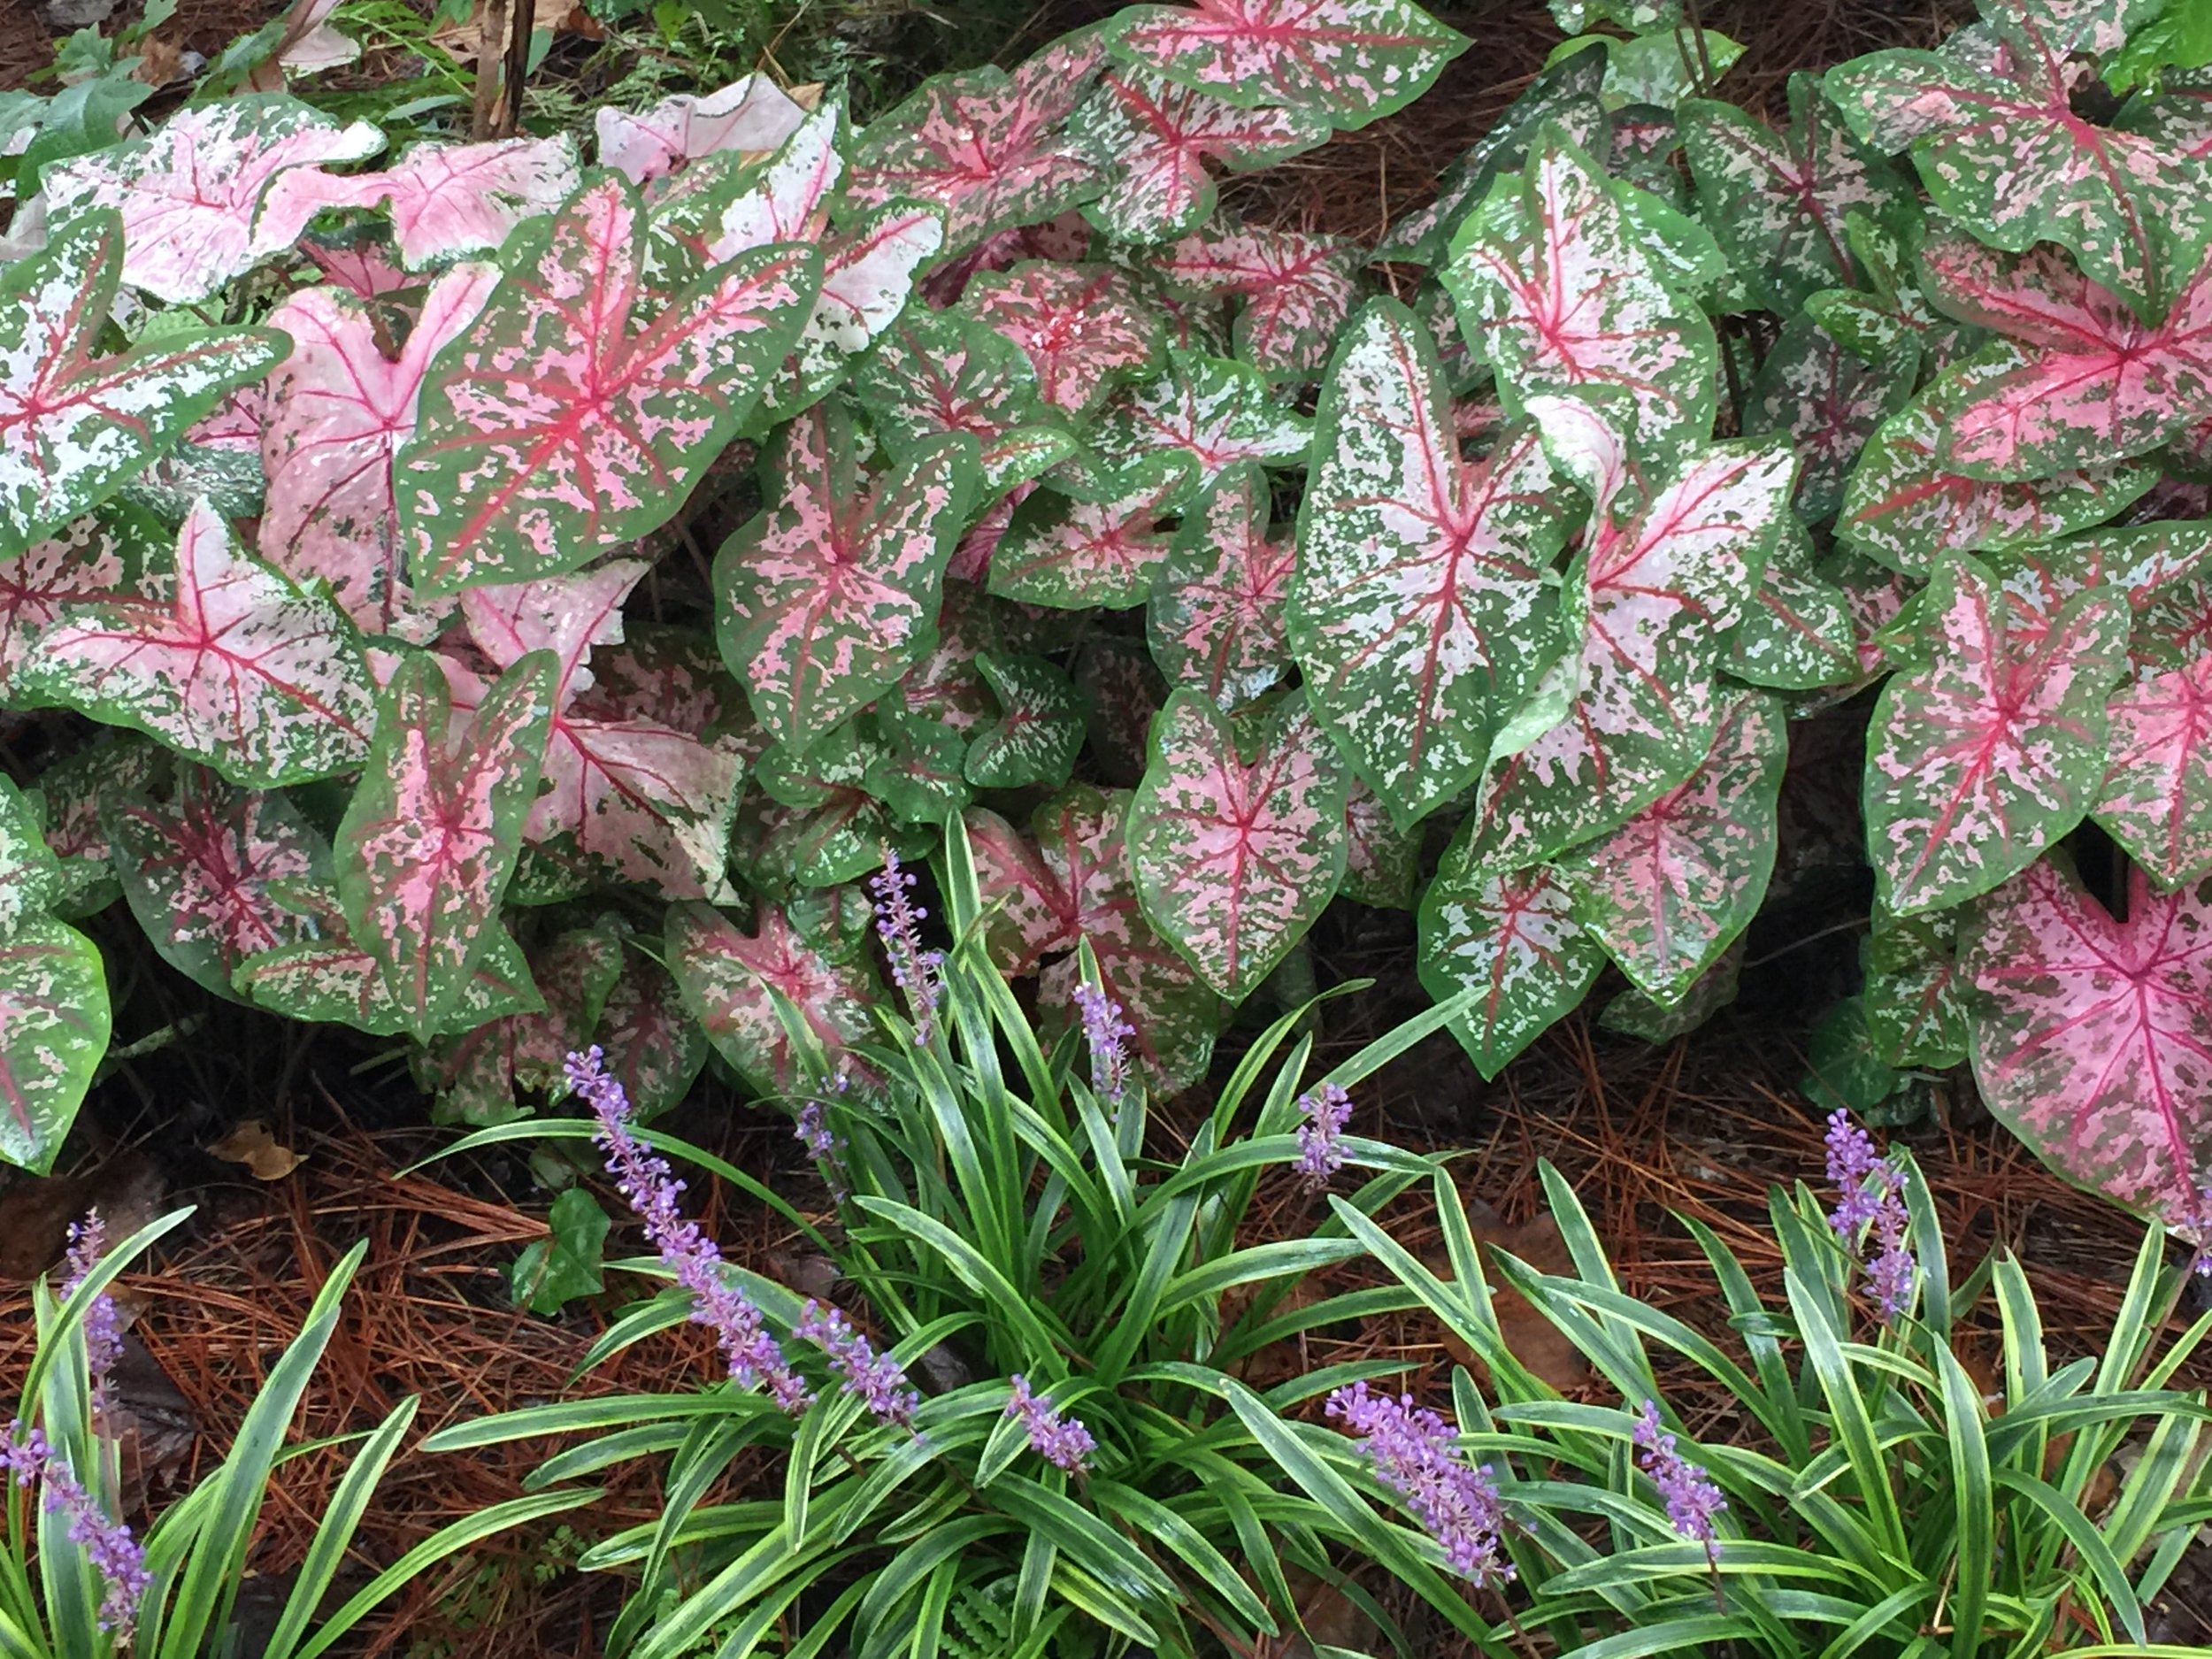 I'm in love with the variegated lirope this year. So I took a billion pictures of it.